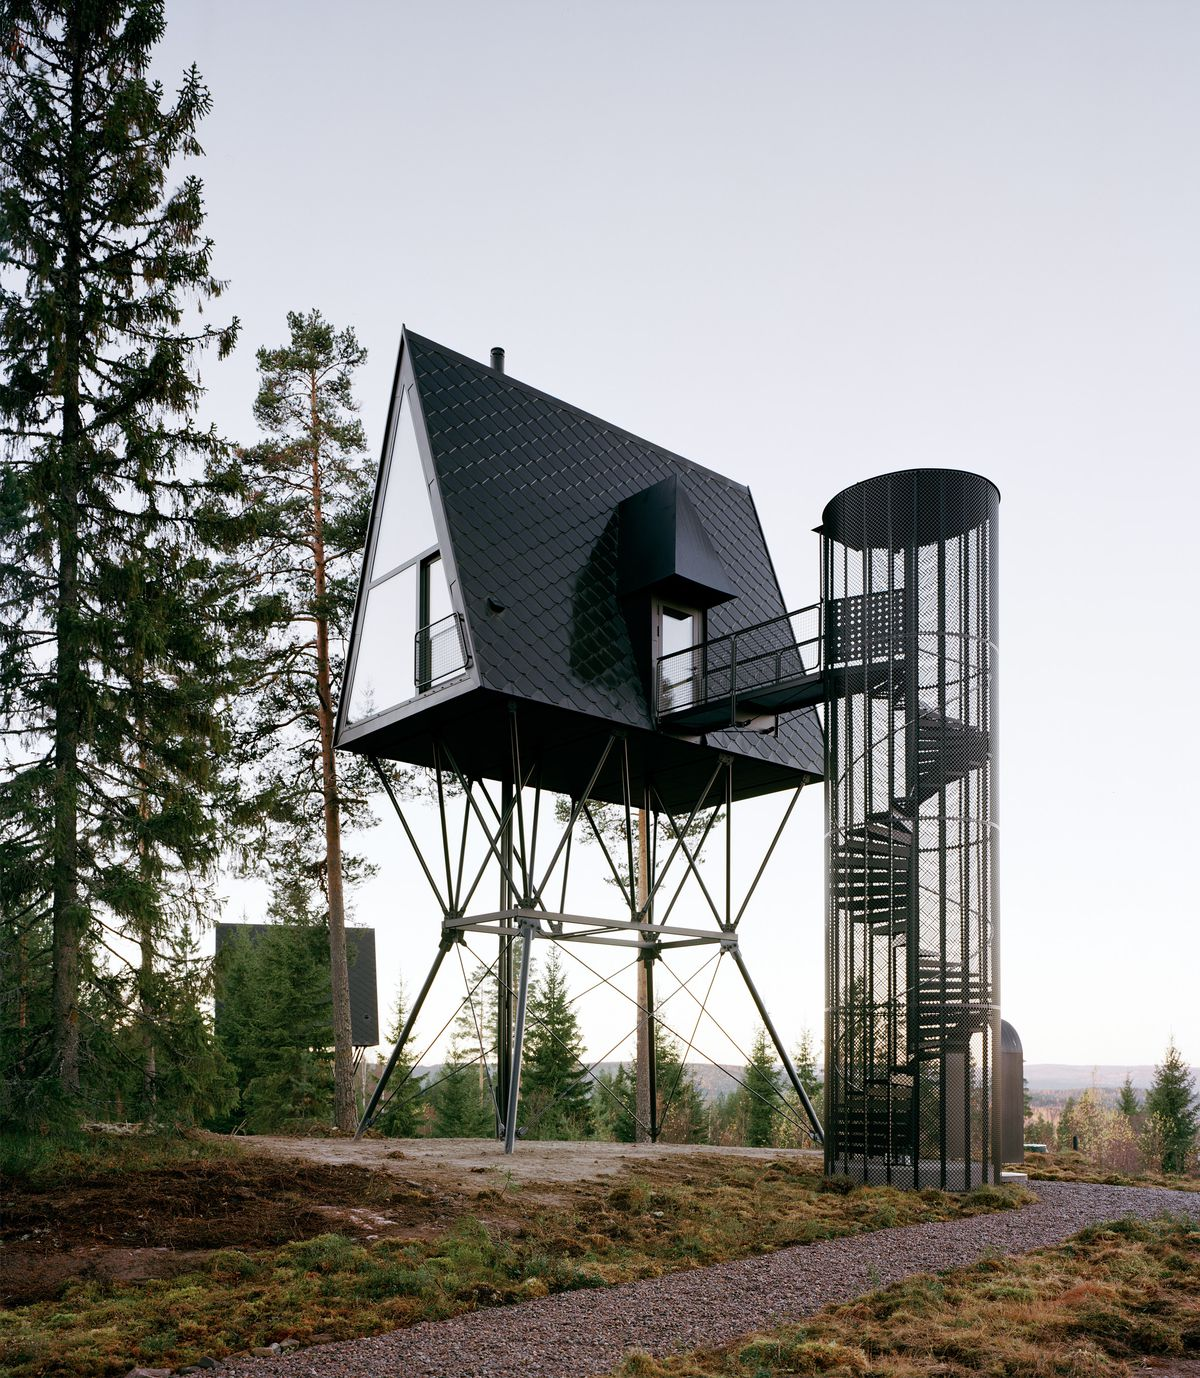 Cottage On Stilts By Andersson Wise Architects: Treetop Cabins In Norway Like Birdhouses For People